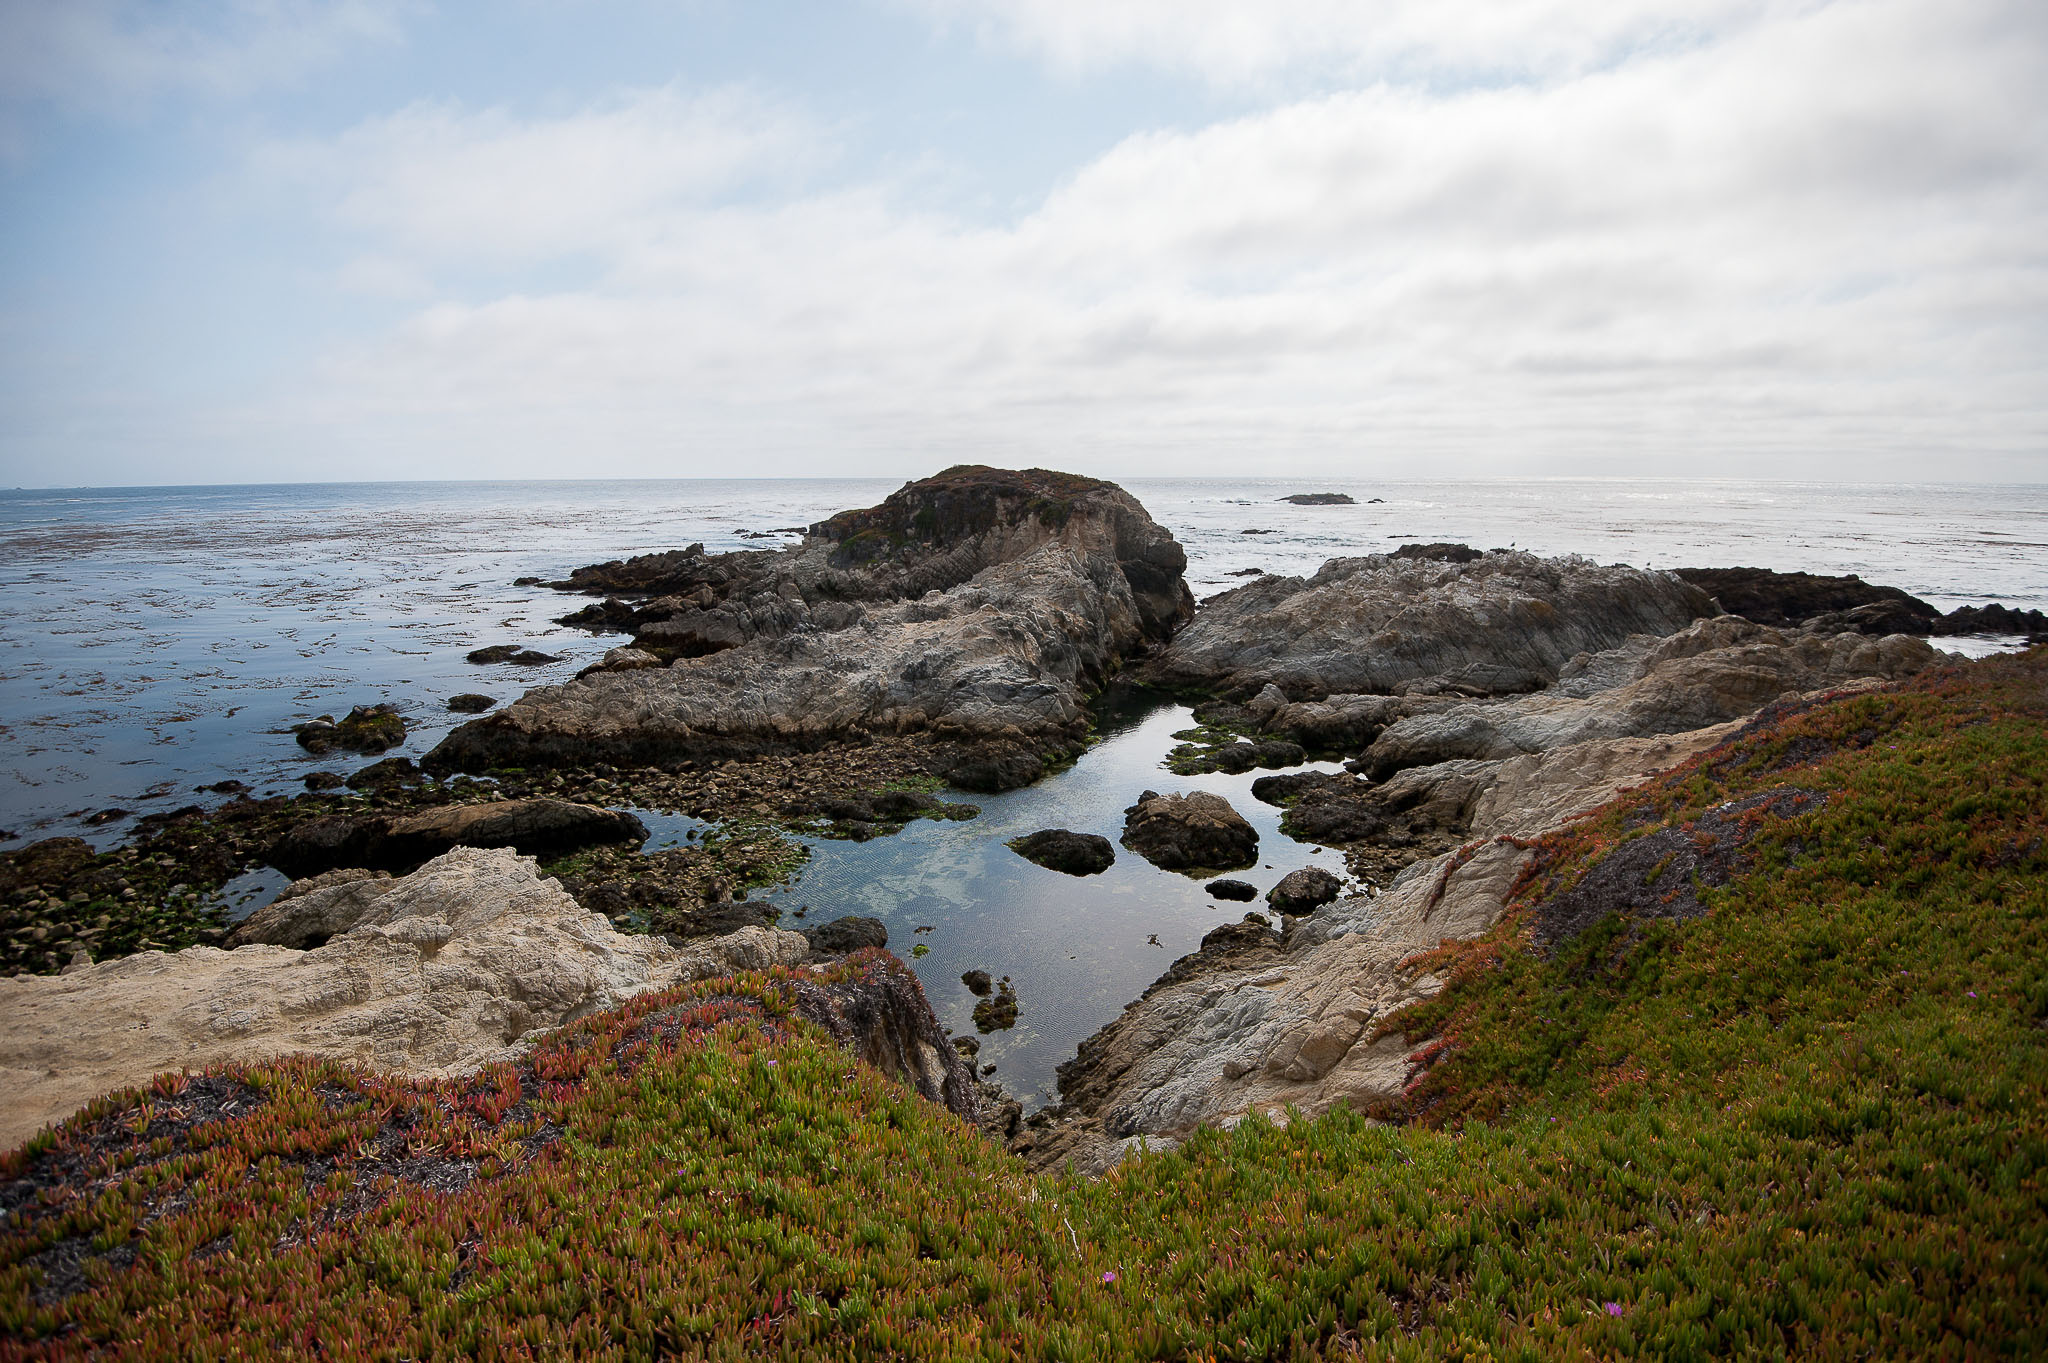 A View from 17 Mile Drive, Pebble Beach